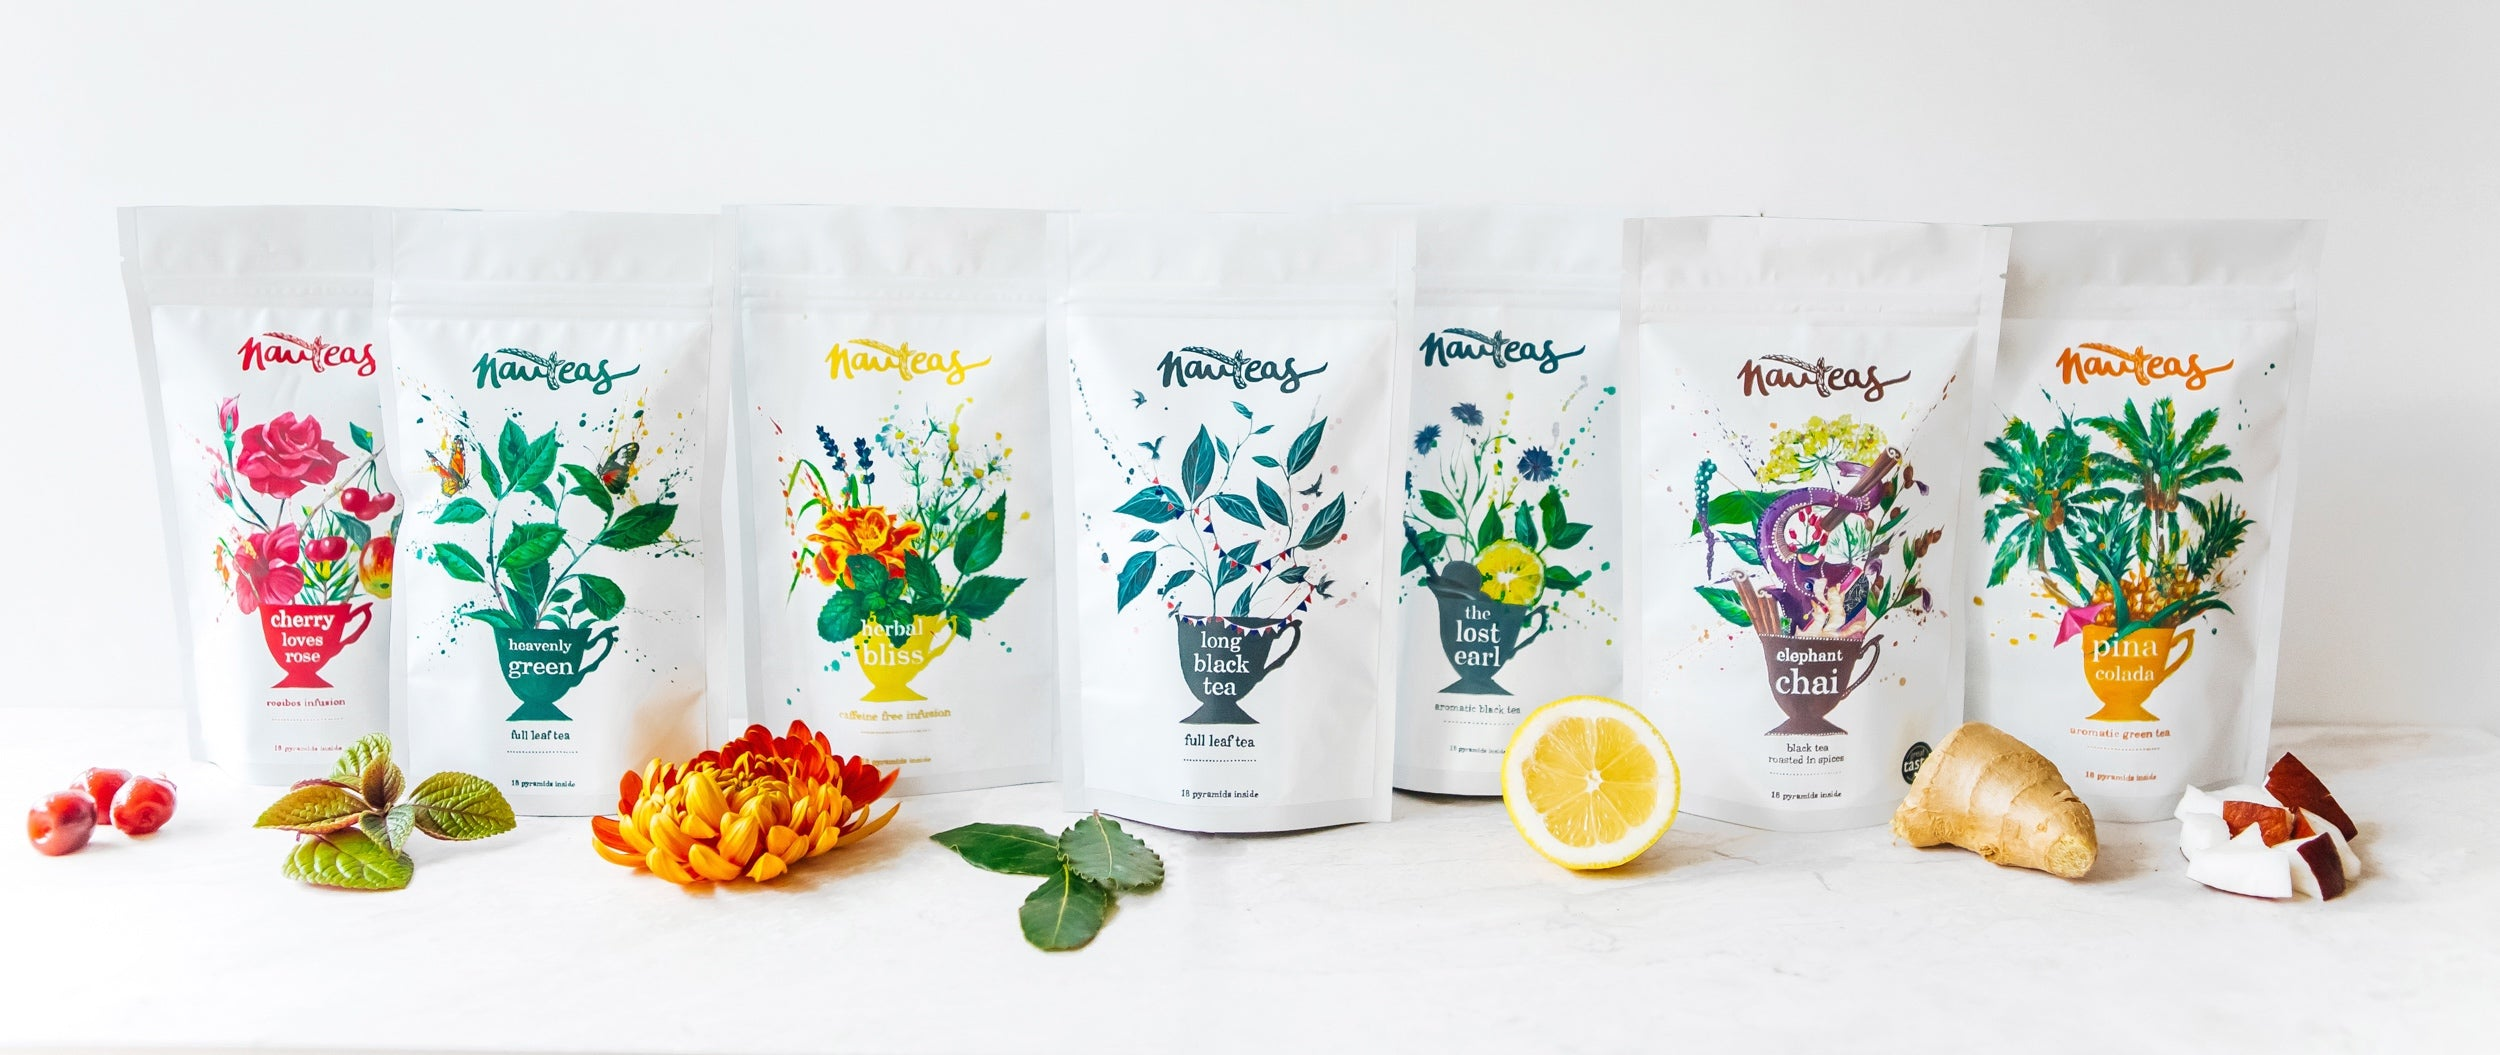 Nauteas Tea Collection - All 7 Flavours